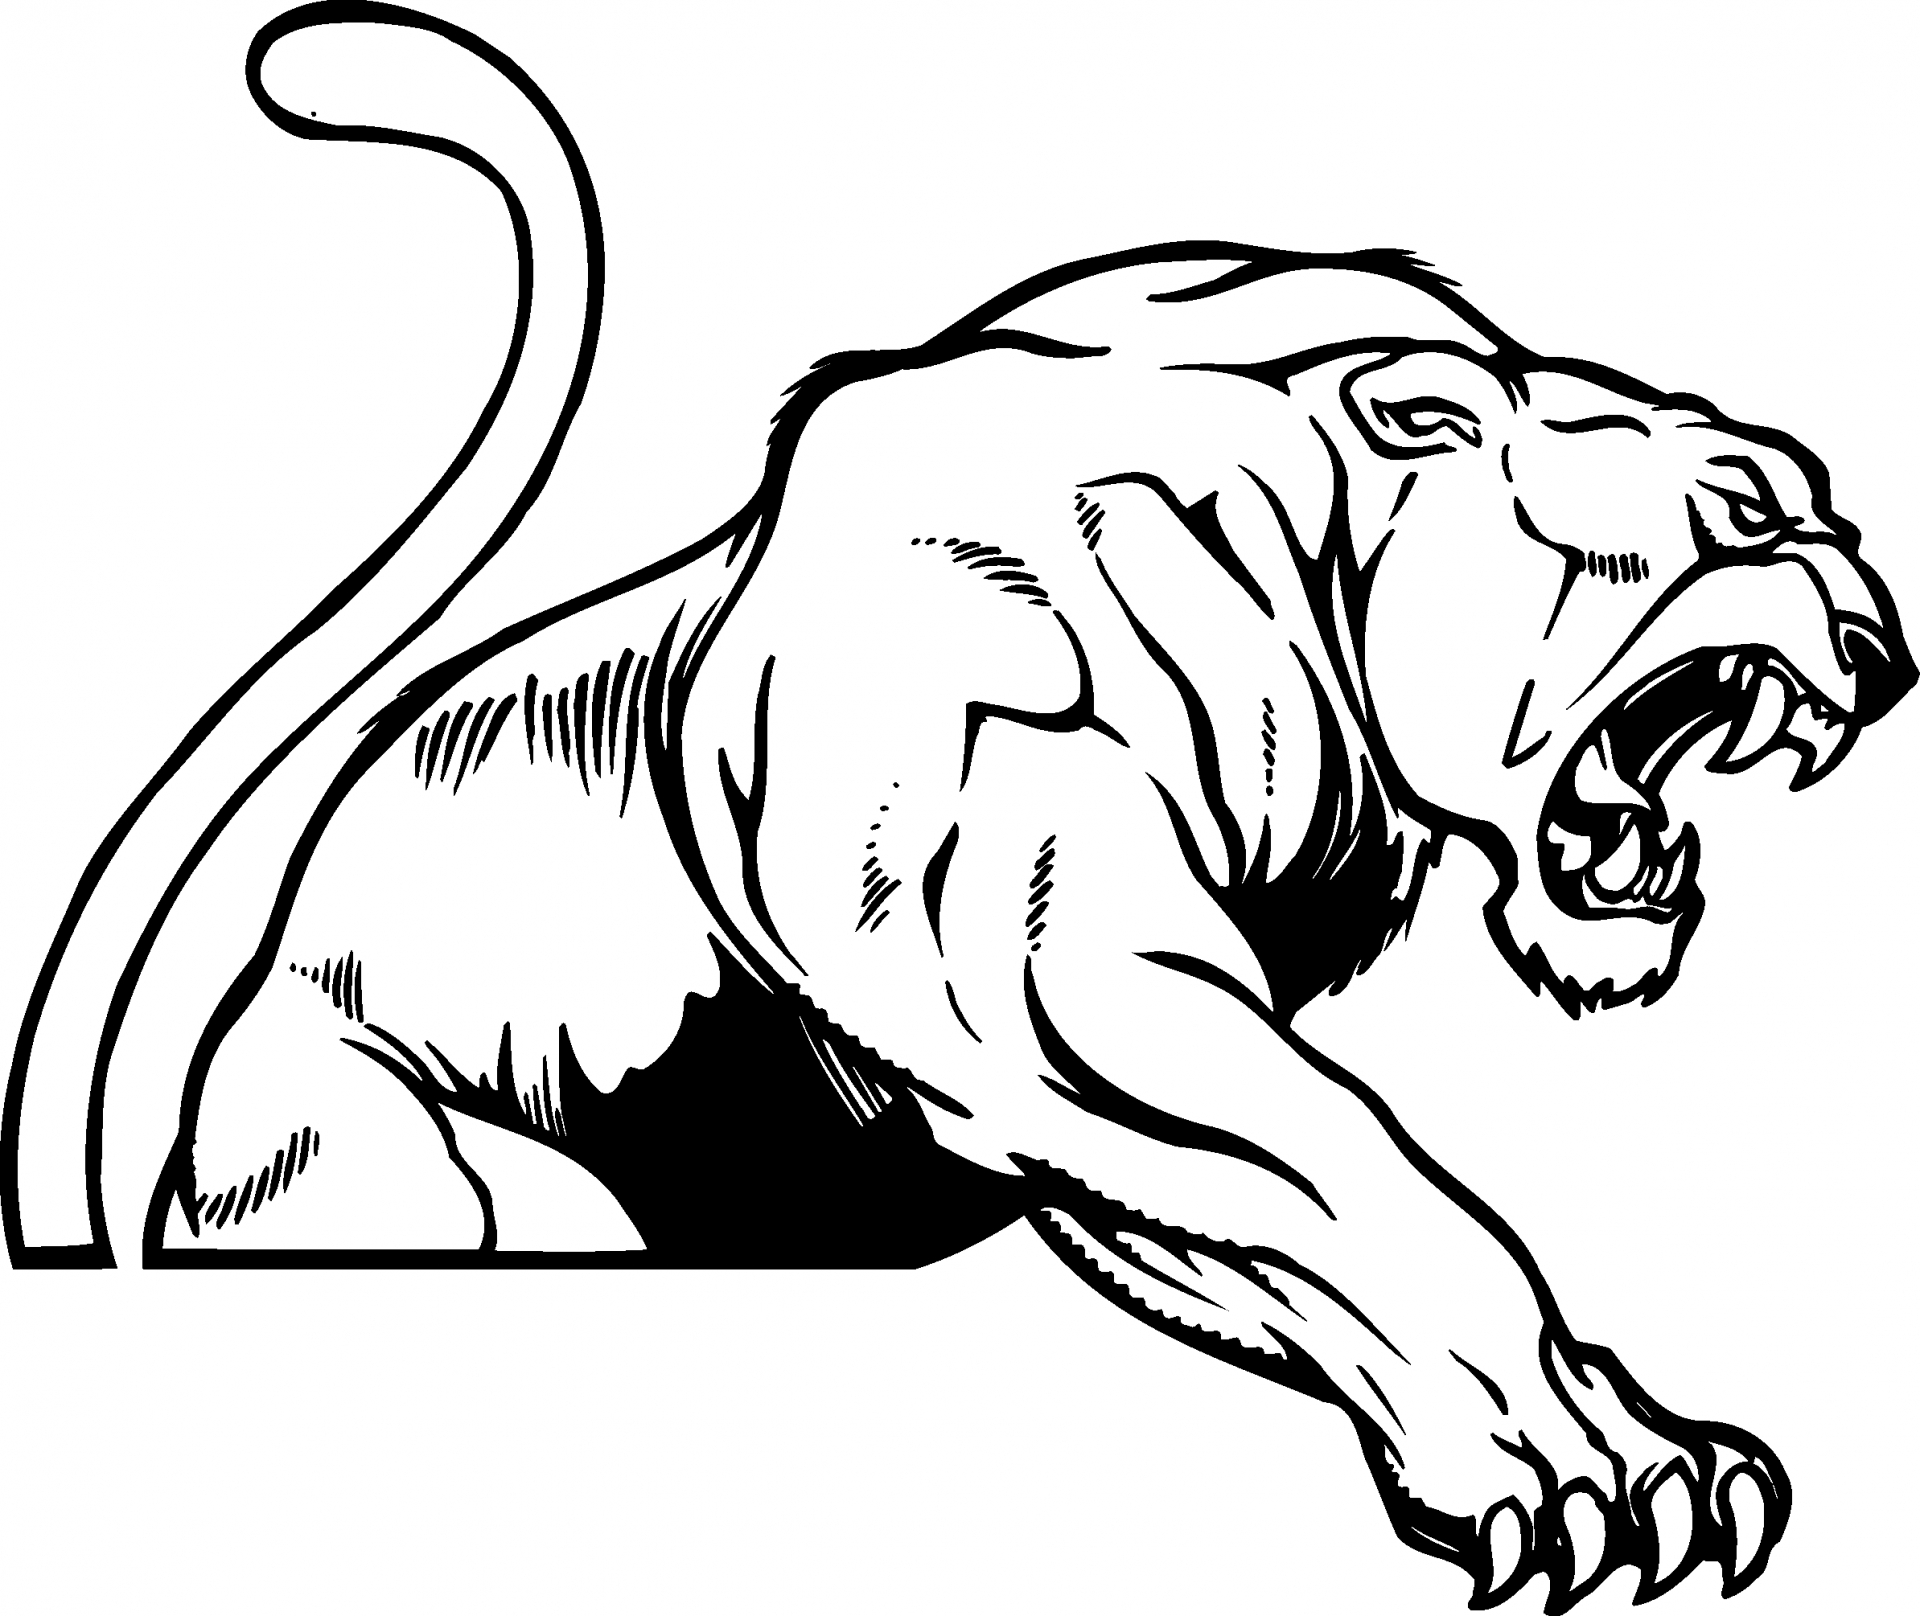 Panther mascot clipart black and white banner download Free Cougar Mascot Clipart, Download Free Clip Art, Free Clip Art on ... banner download